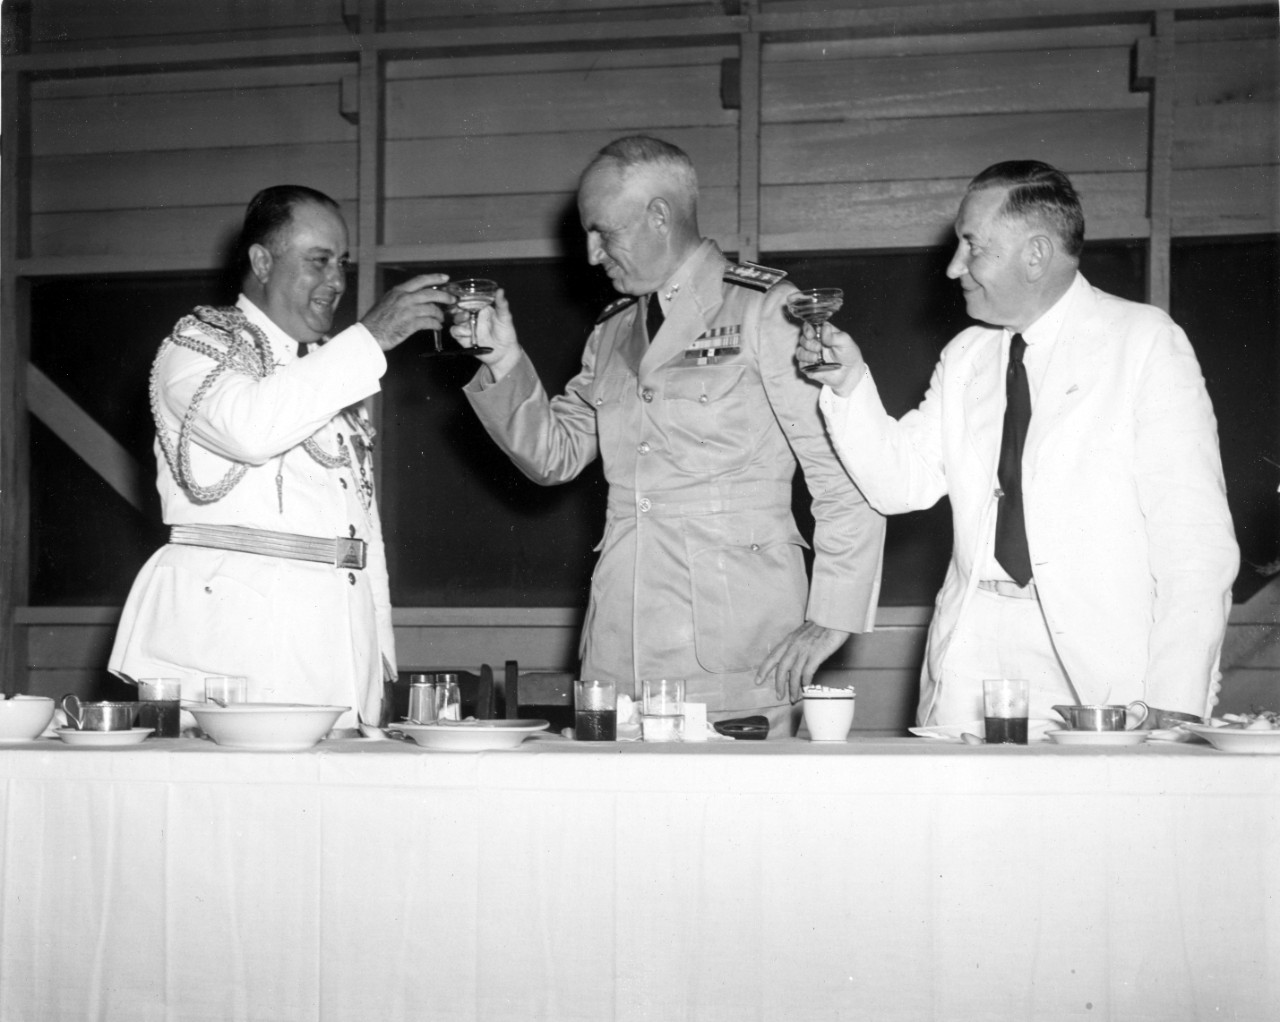 "<p>S-121-O.01 RADM Clifford Van Hook Photo Collection</p><div style=""left: -10000px; top: 0px; width: 9000px; height: 16px; overflow: hidden; position: absolute;""><div>&nbsp;</div></div>"